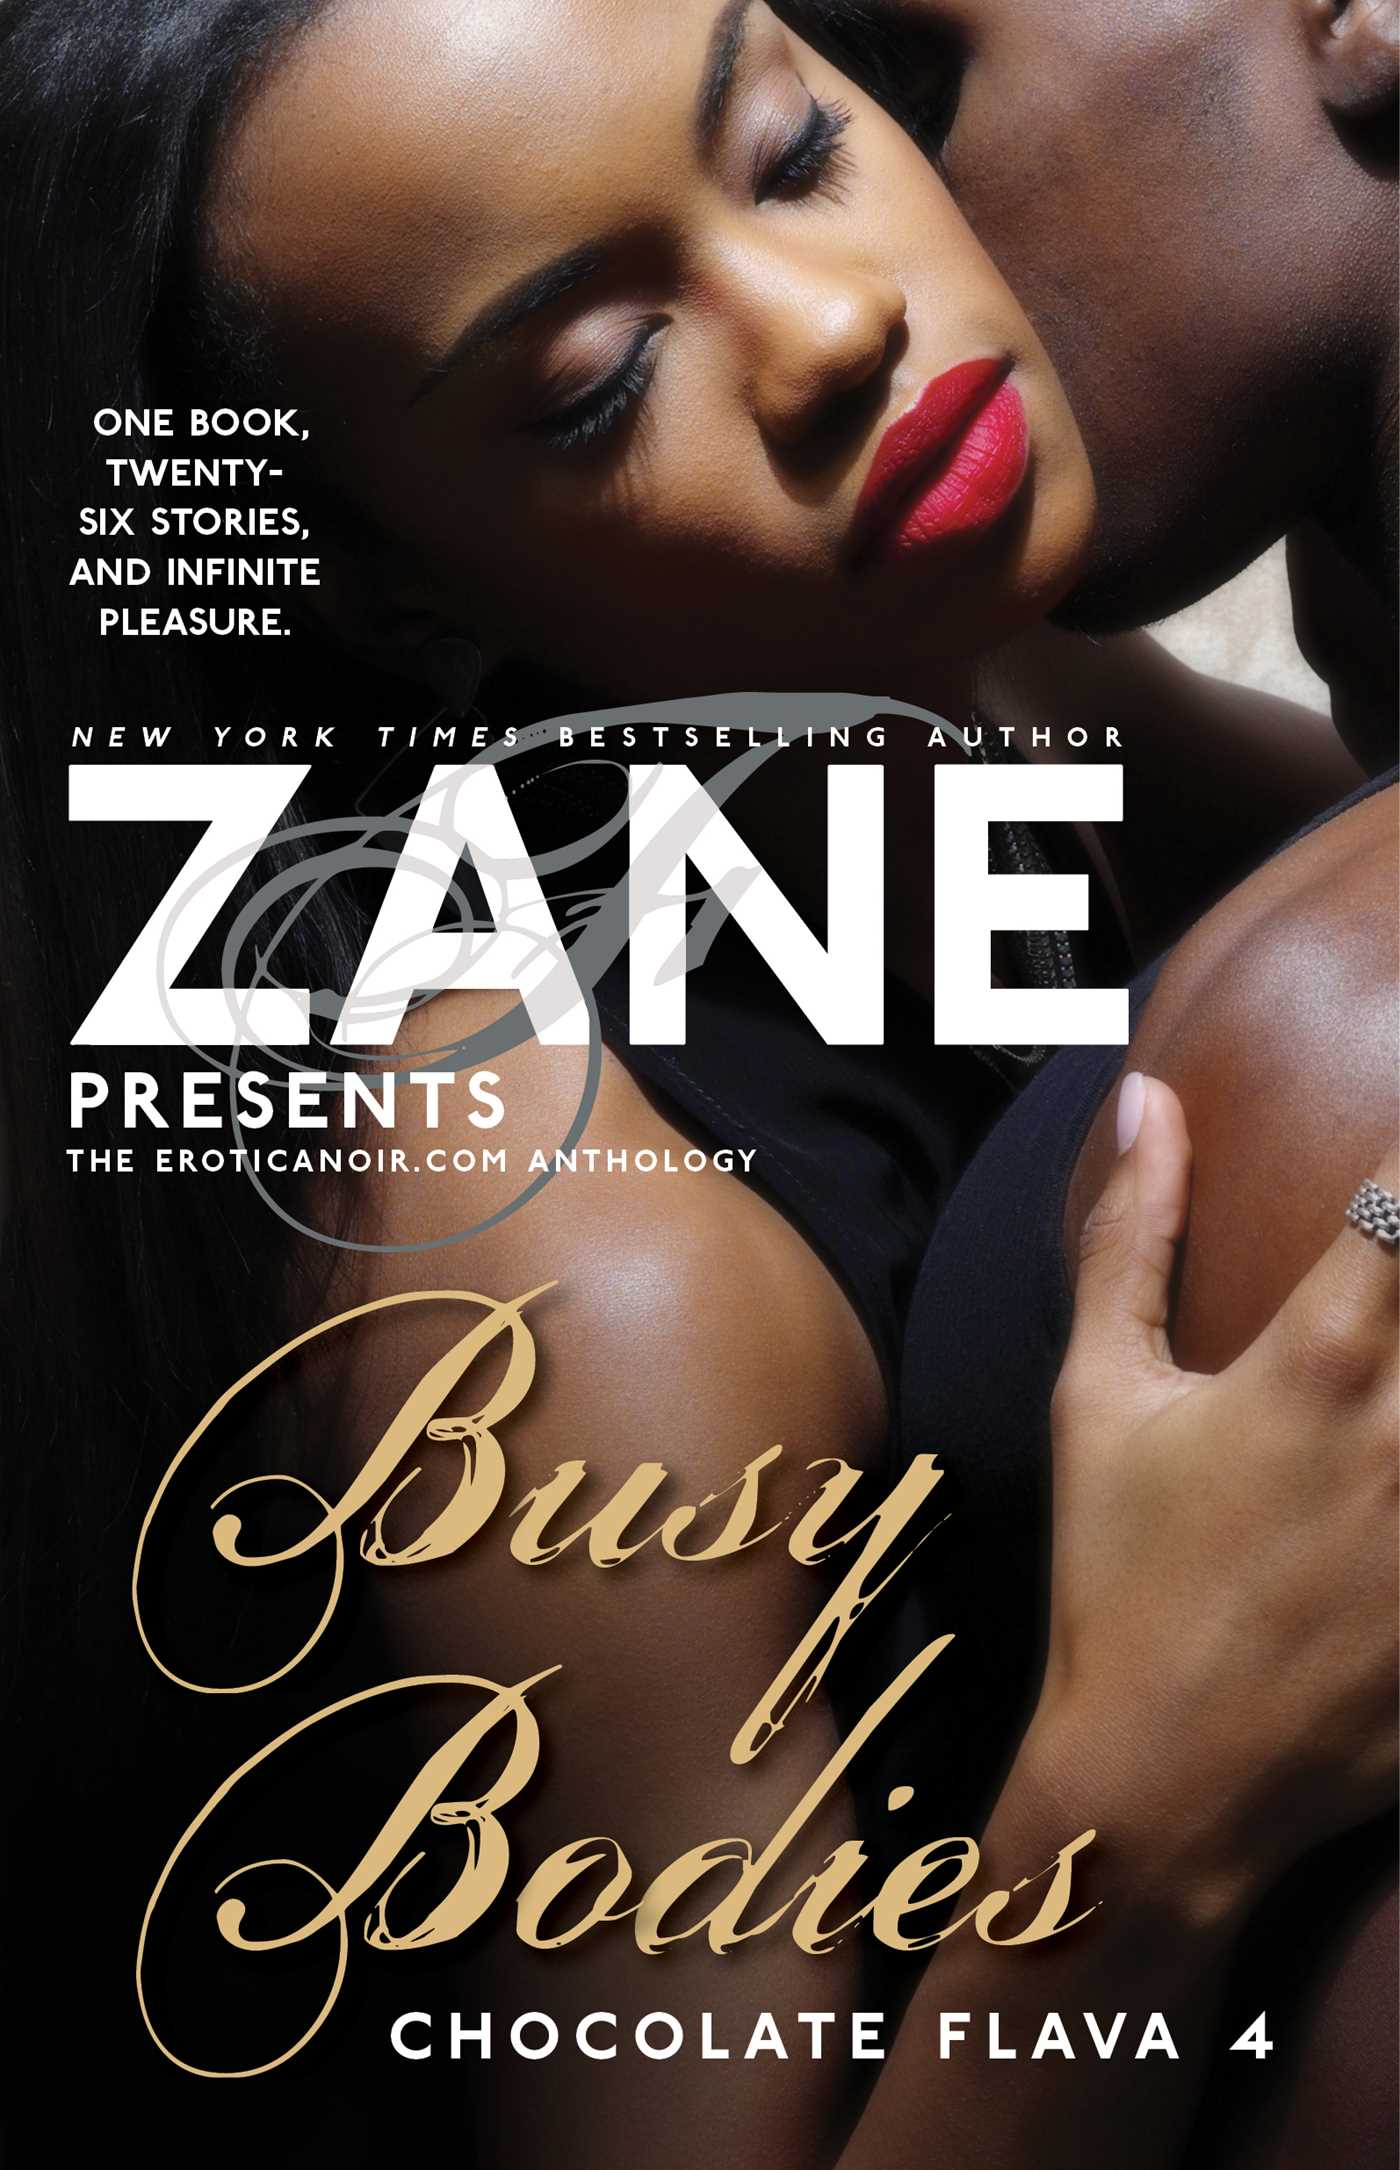 Zanes busy bodies chocolate flava 4 9781451689648 hr